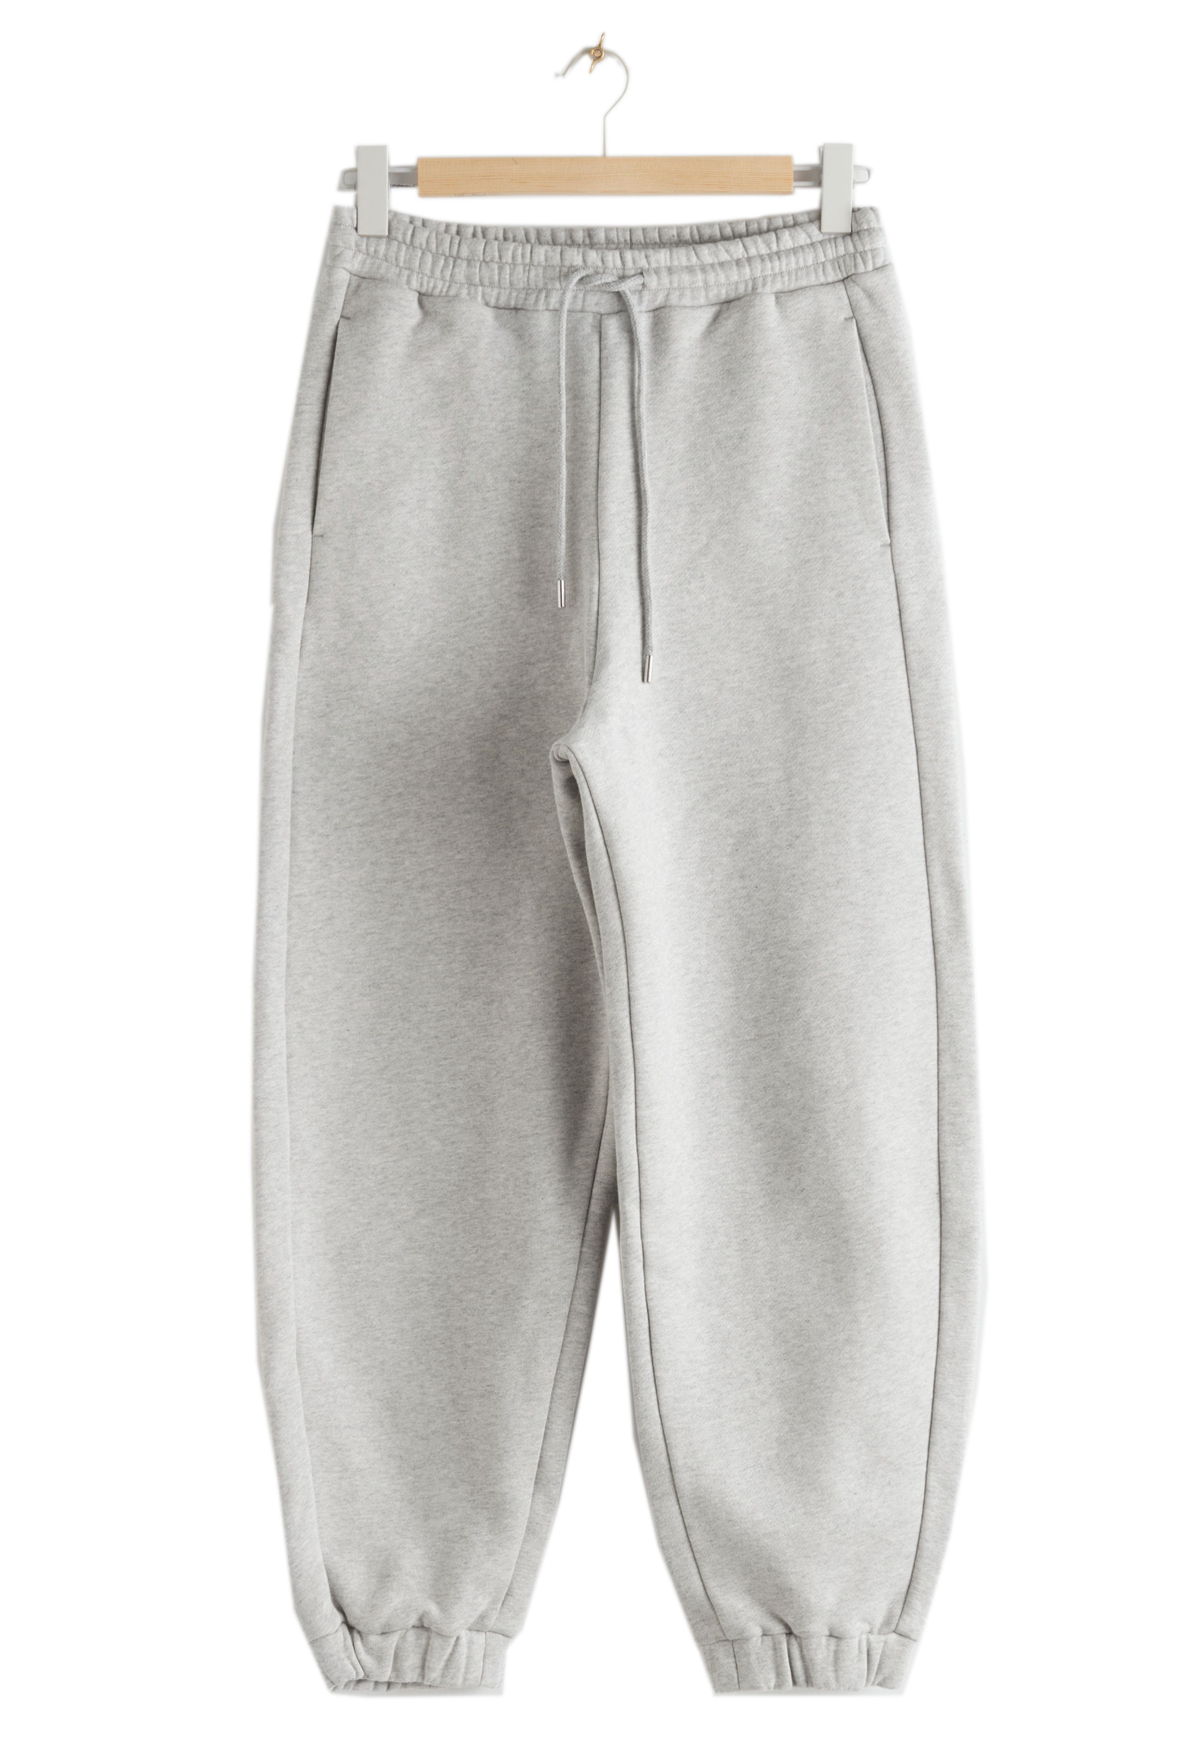 otherstories grey joggers